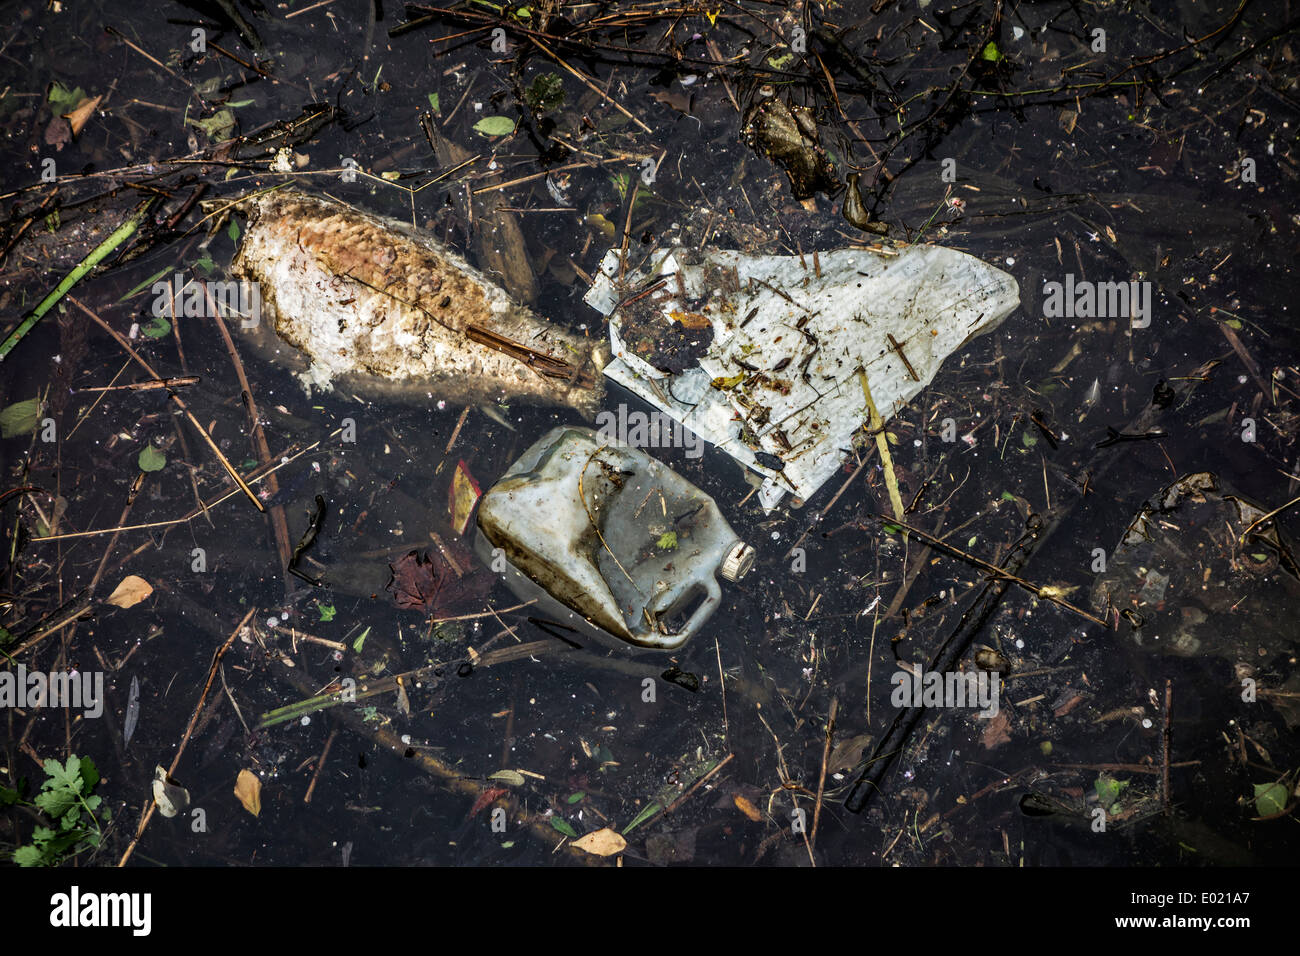 Dead rotten fish floating among rubbish and non-degradable waste in water of river - Stock Image